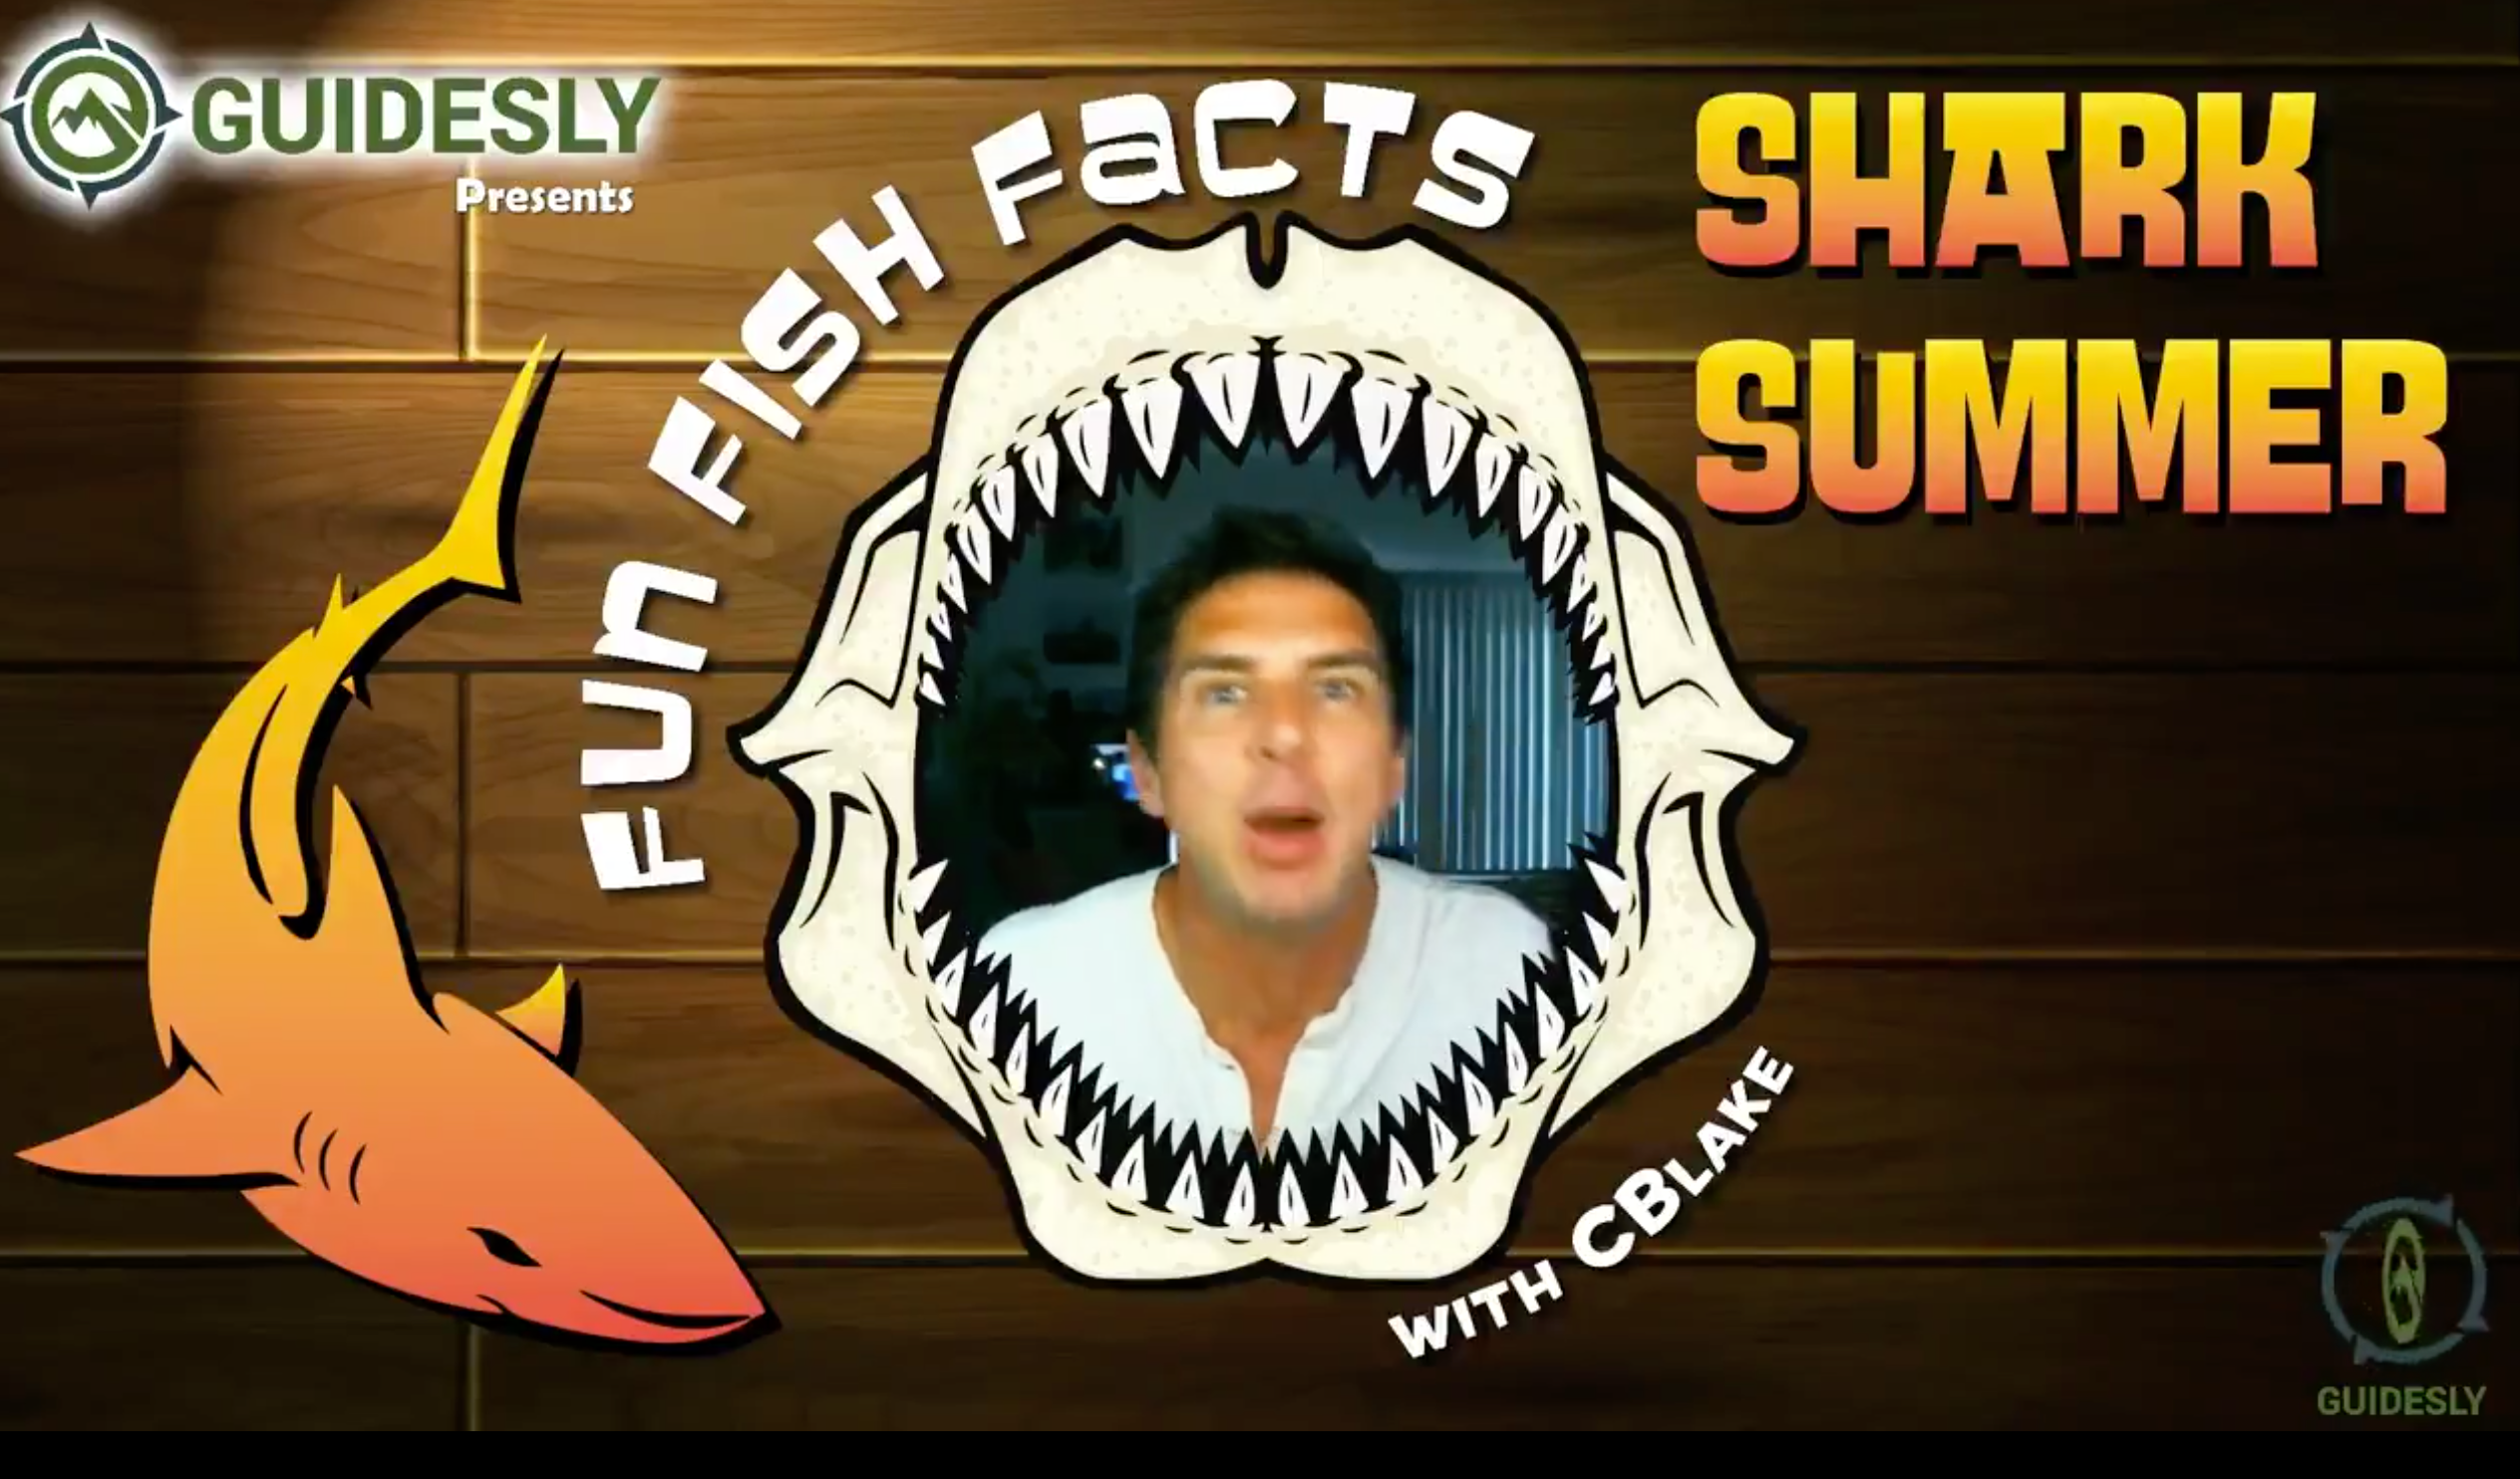 Shark Summer_Fun Fish Facts_Guidesly